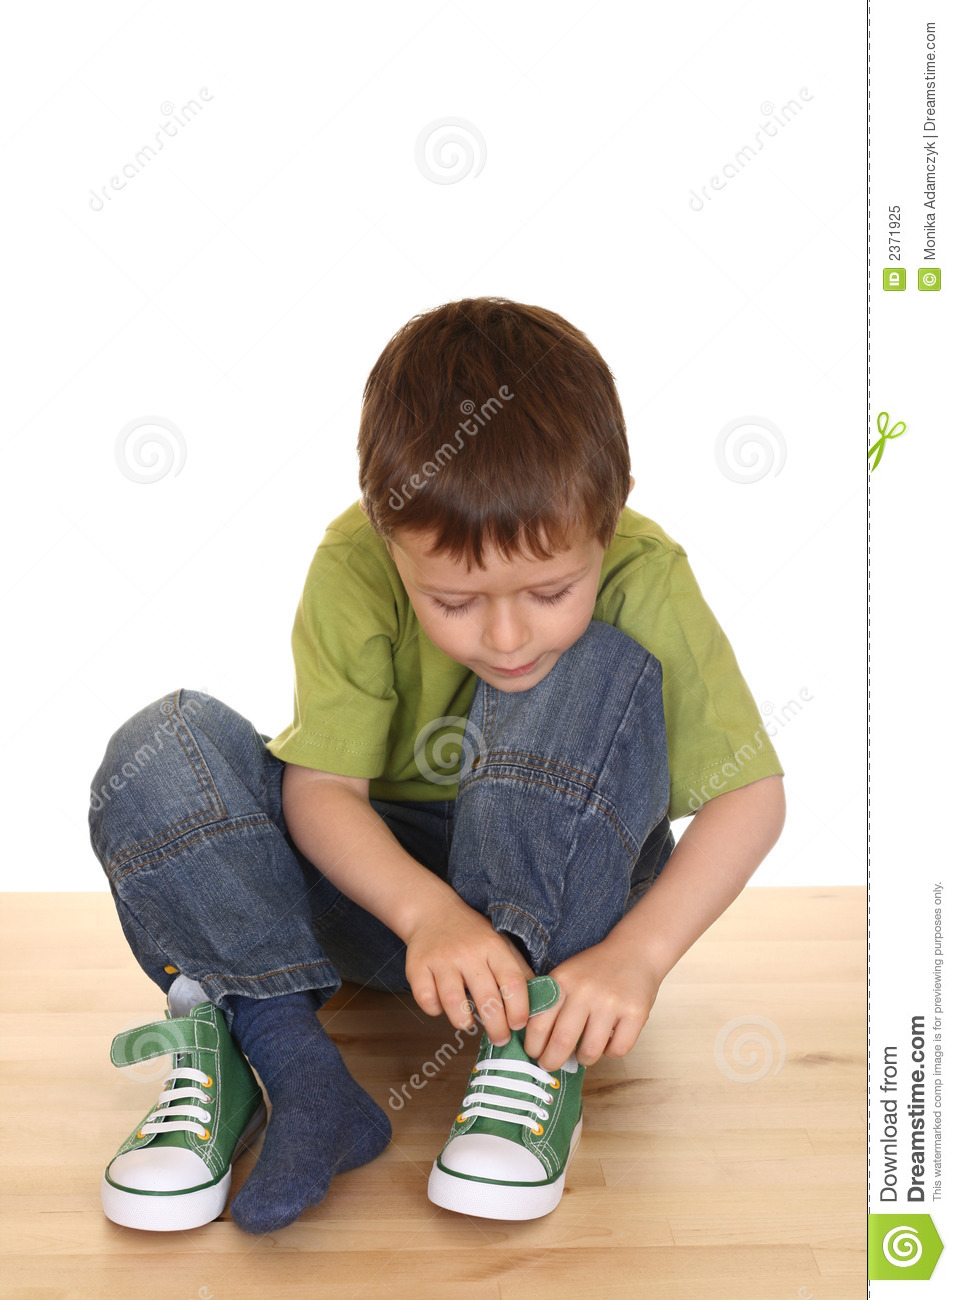 Putting On Shoes Clipart